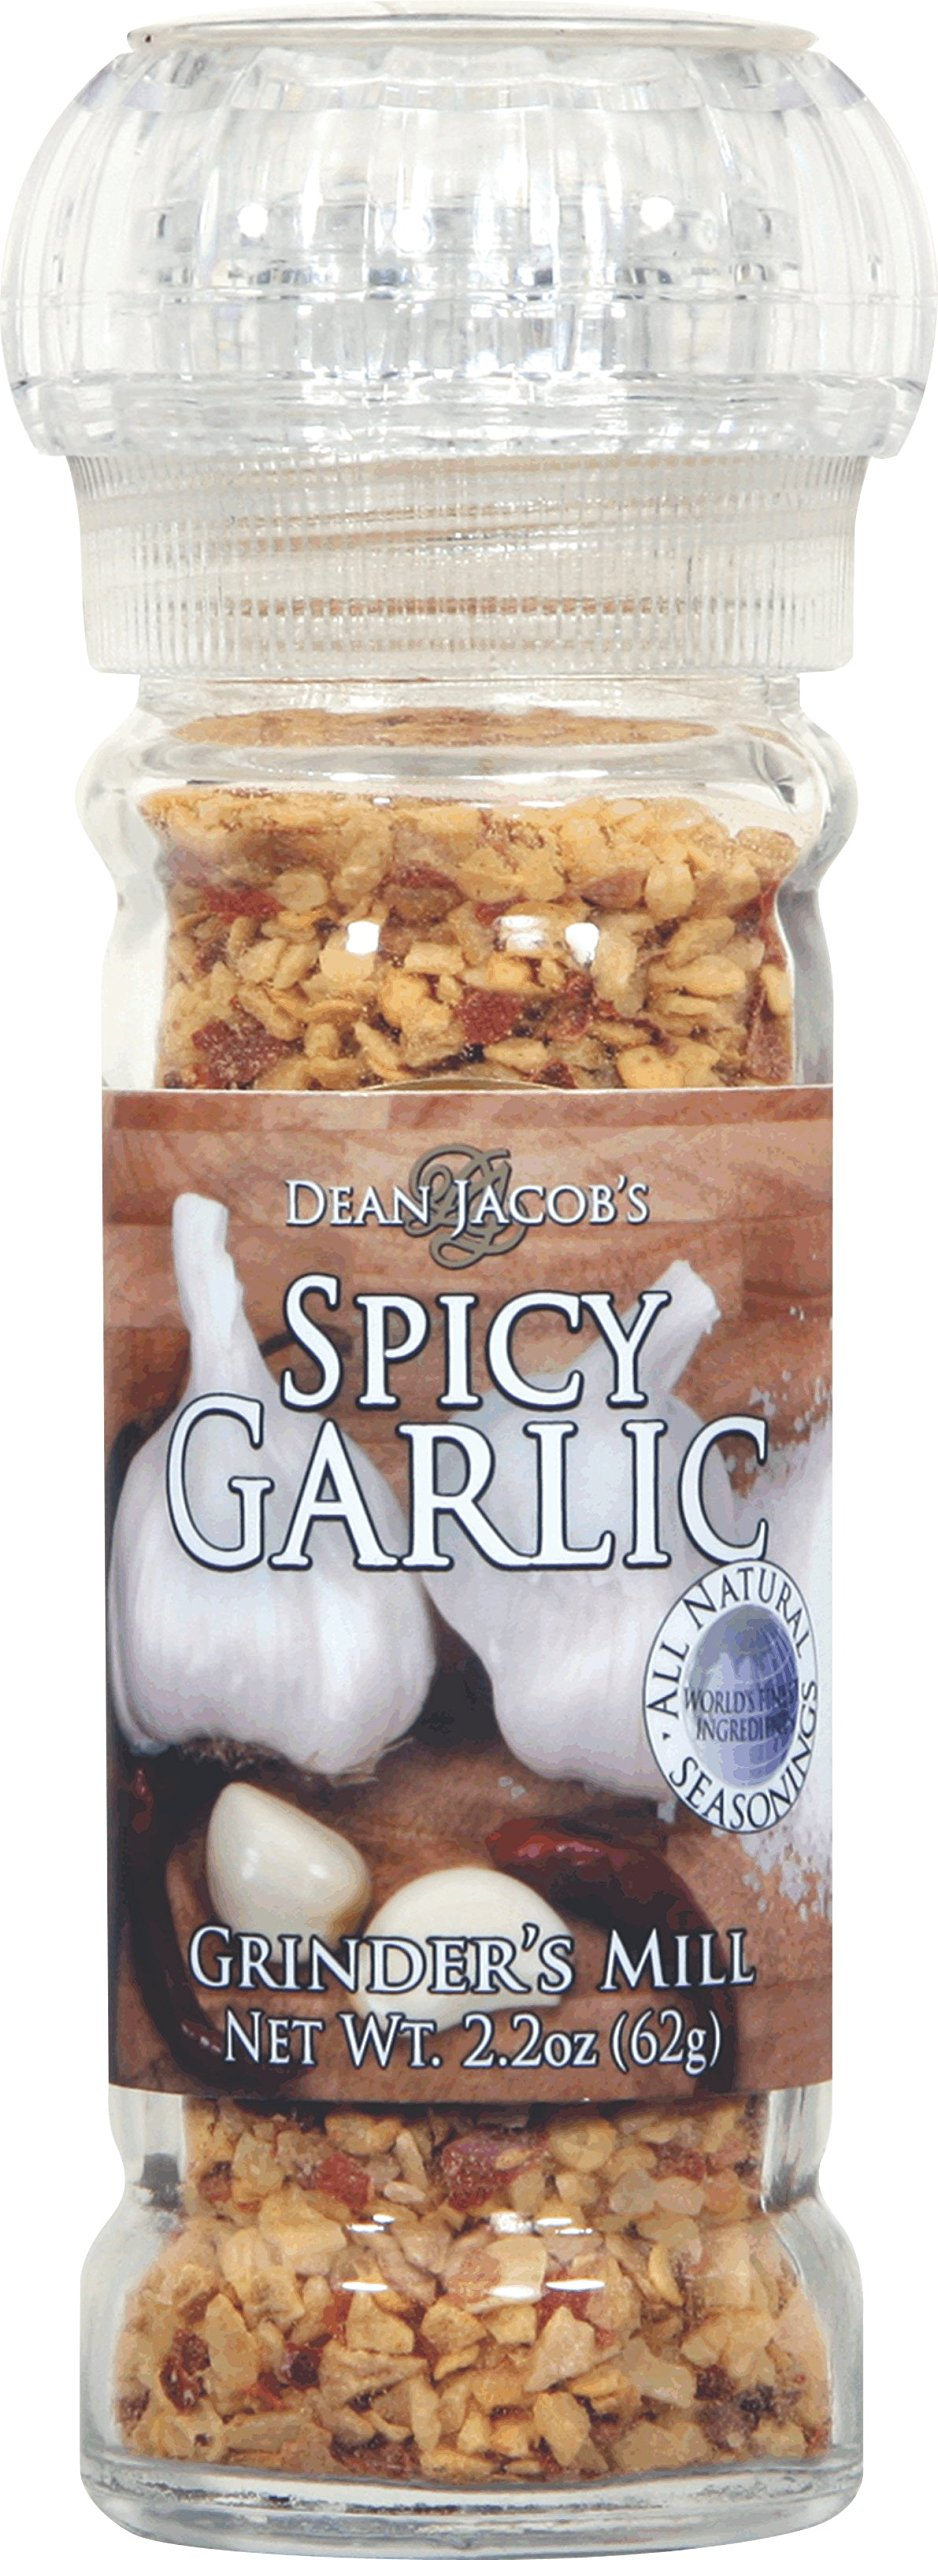 Dean Jacobs Grinder Spicy Garlic, 2.2-Ounce by Dean Jacob's (Image #1)